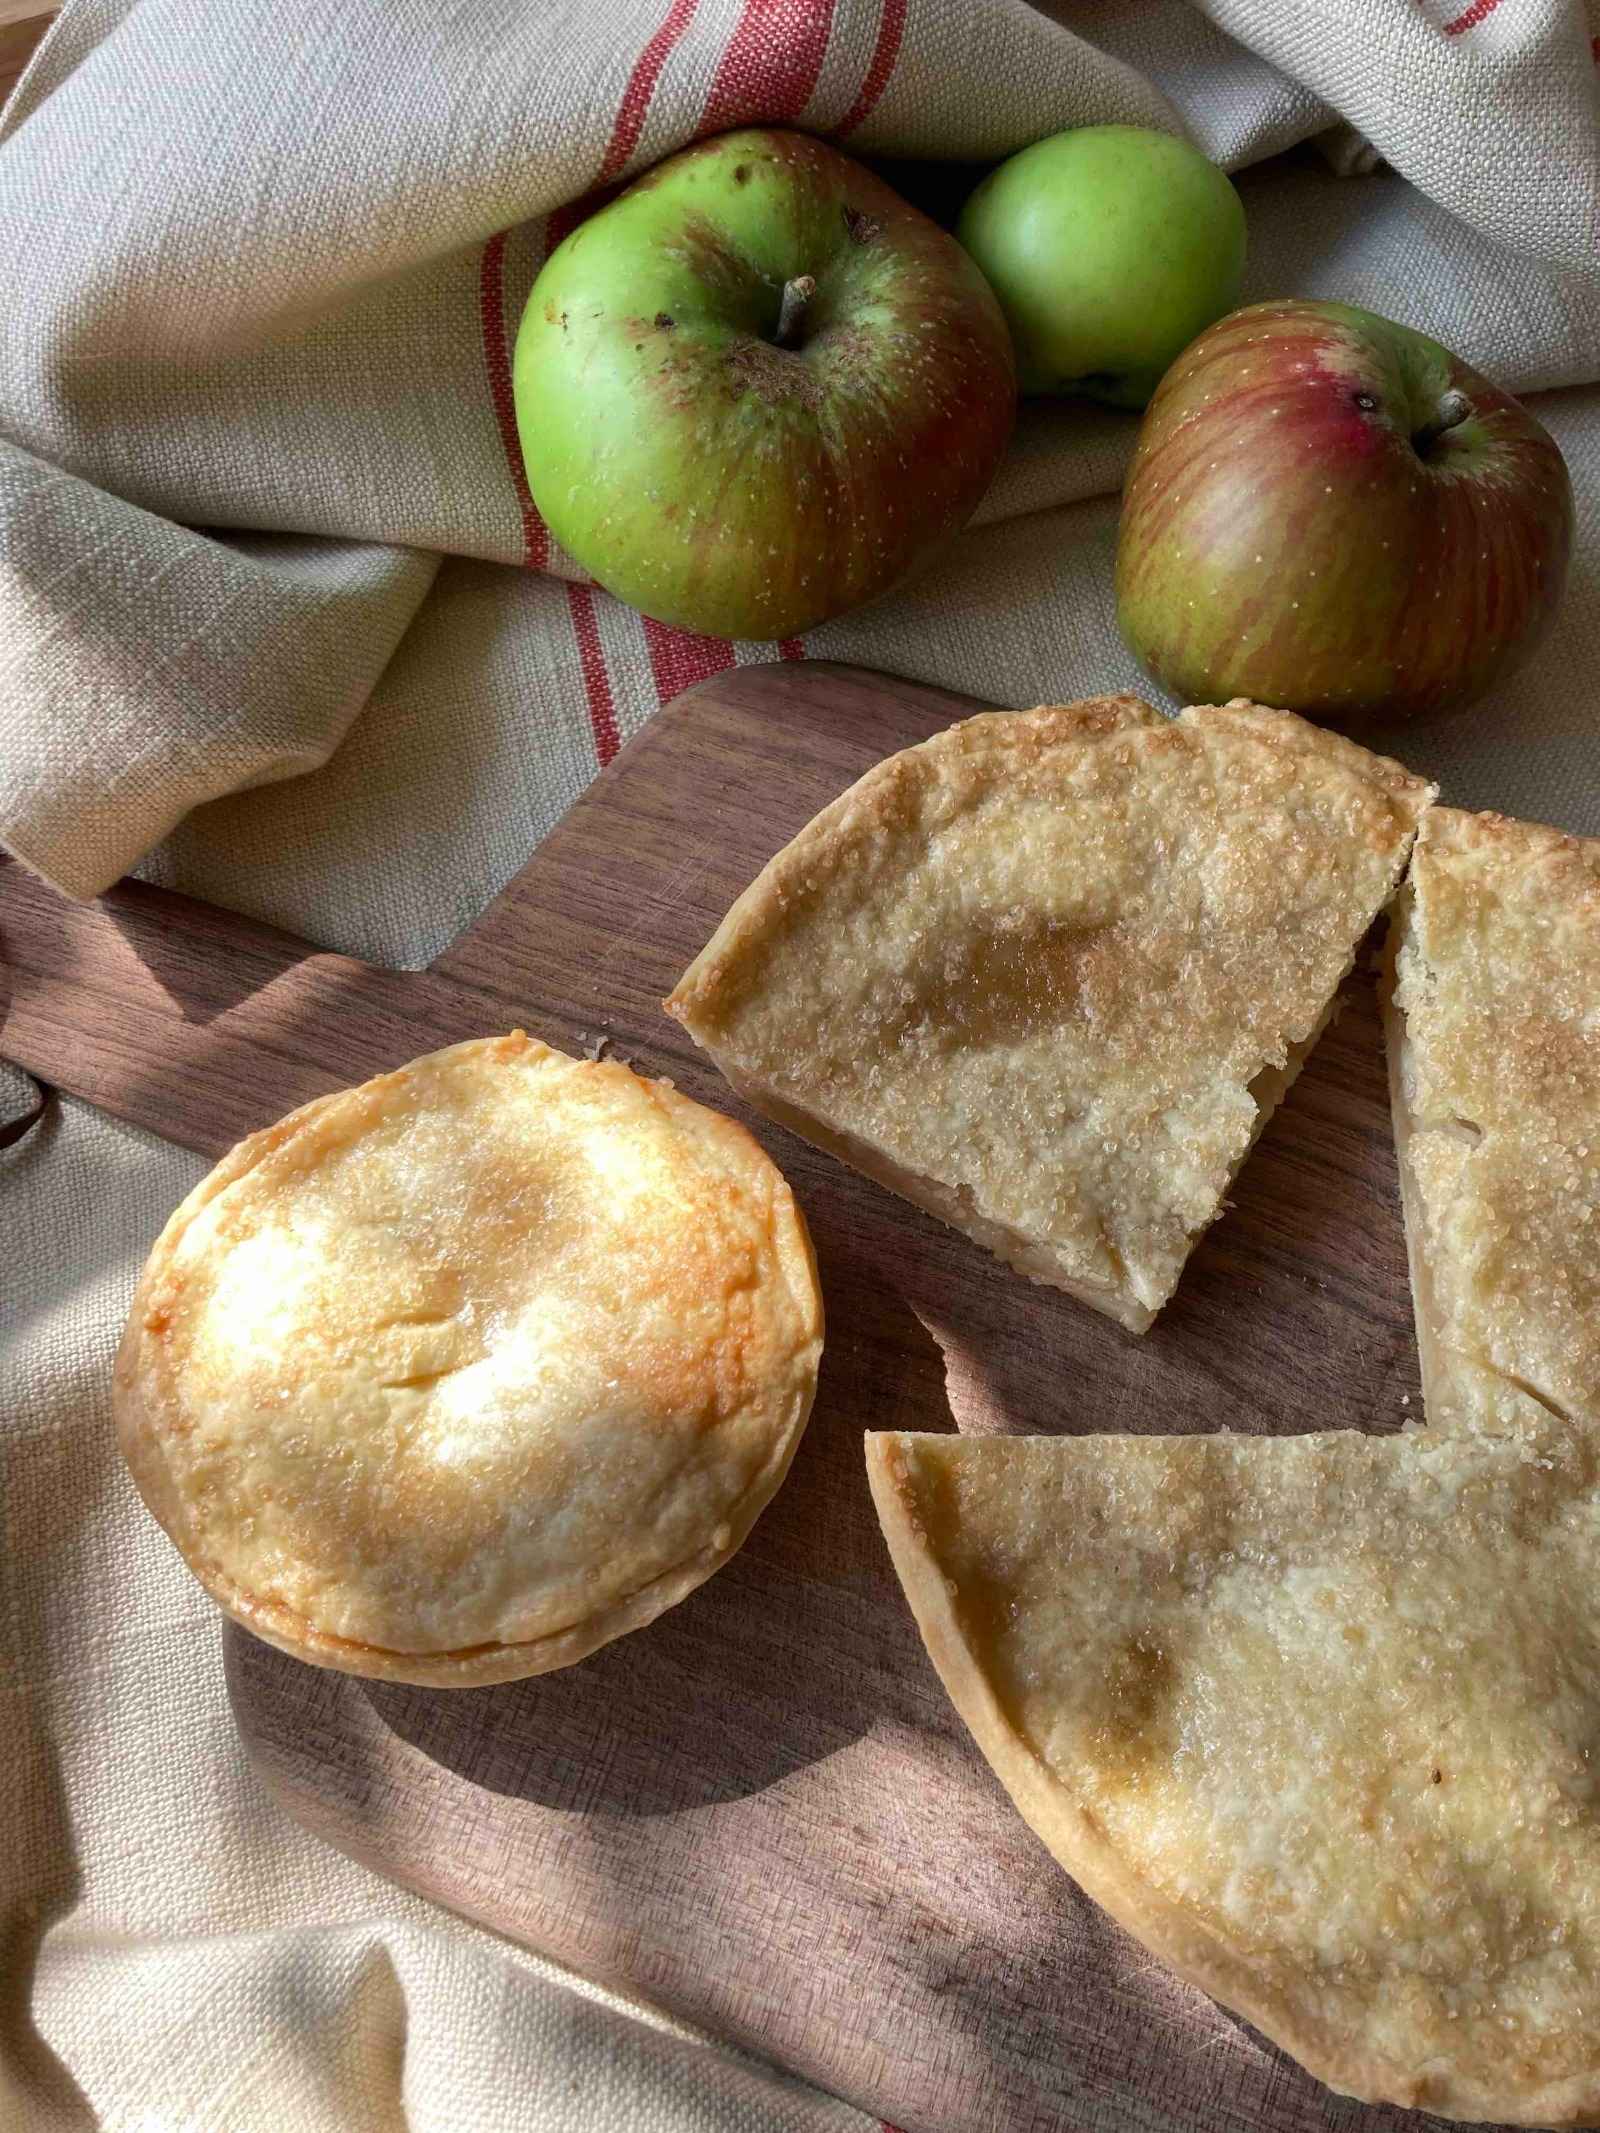 Simon's apple pies with the apples he picked from Dave-next-door's Tree